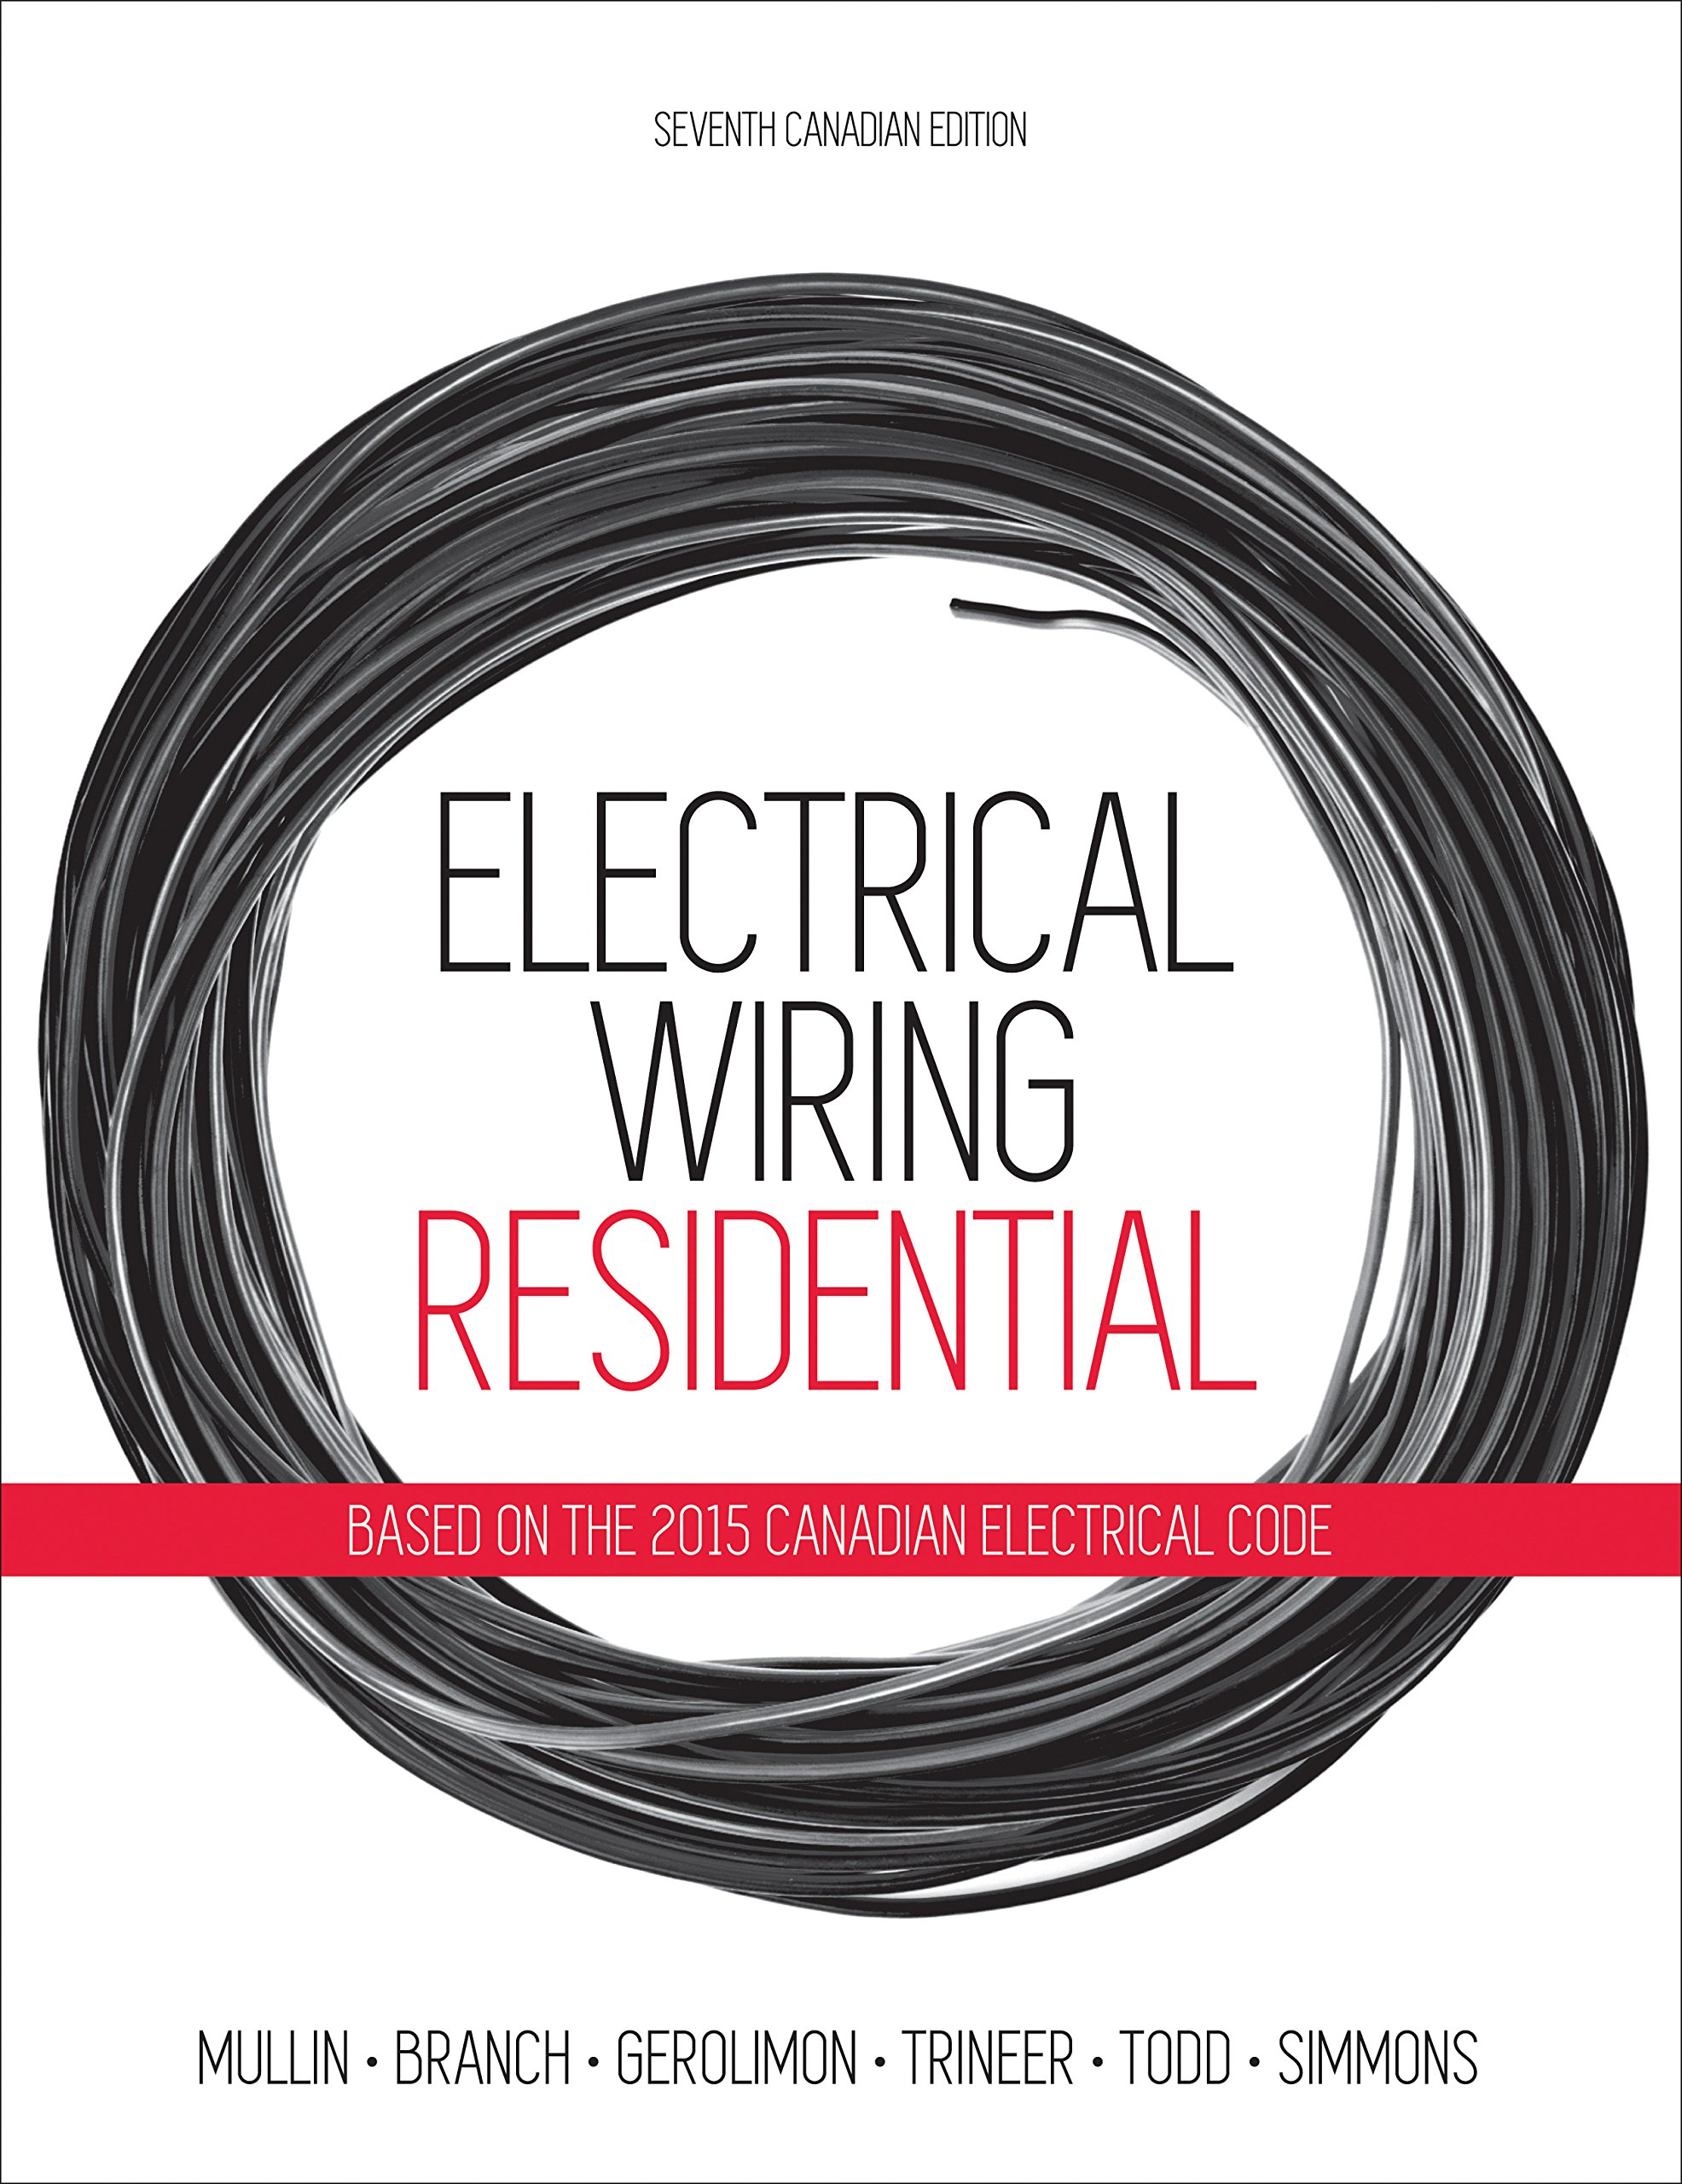 Electrical Wiring Residential Ray Mullin Tony Branch Sandy Basic On In The Home Gerolimon Craig Trineer Bill Todd Phil Simmons 9780176570453 Books